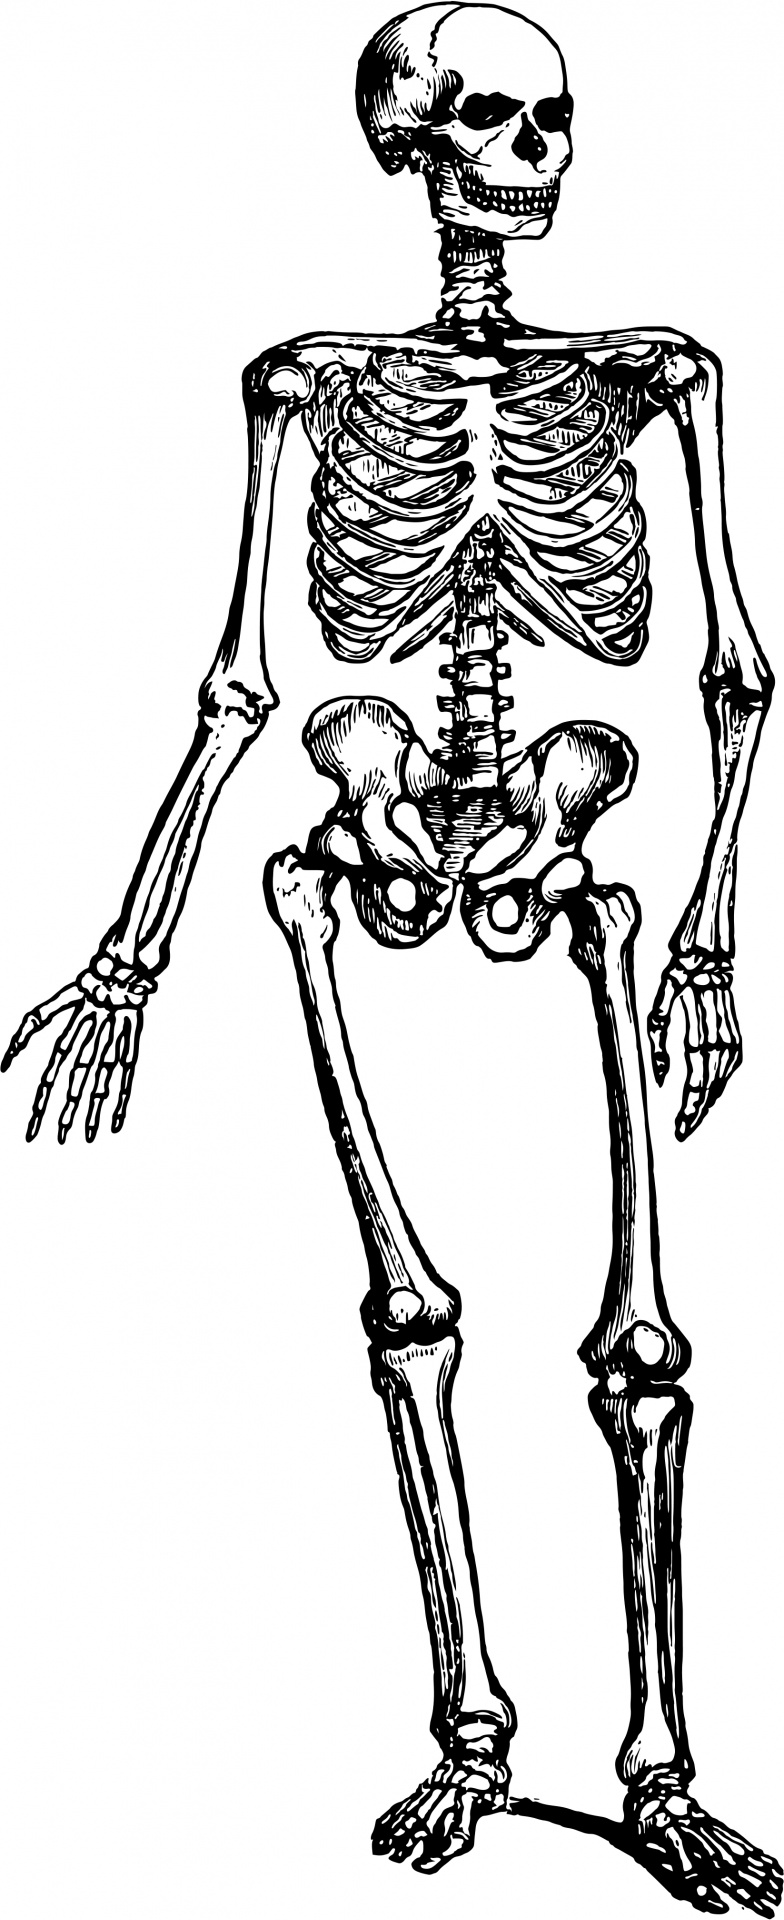 picture royalty free library Skeleton clipart black and white. Human free stock photo